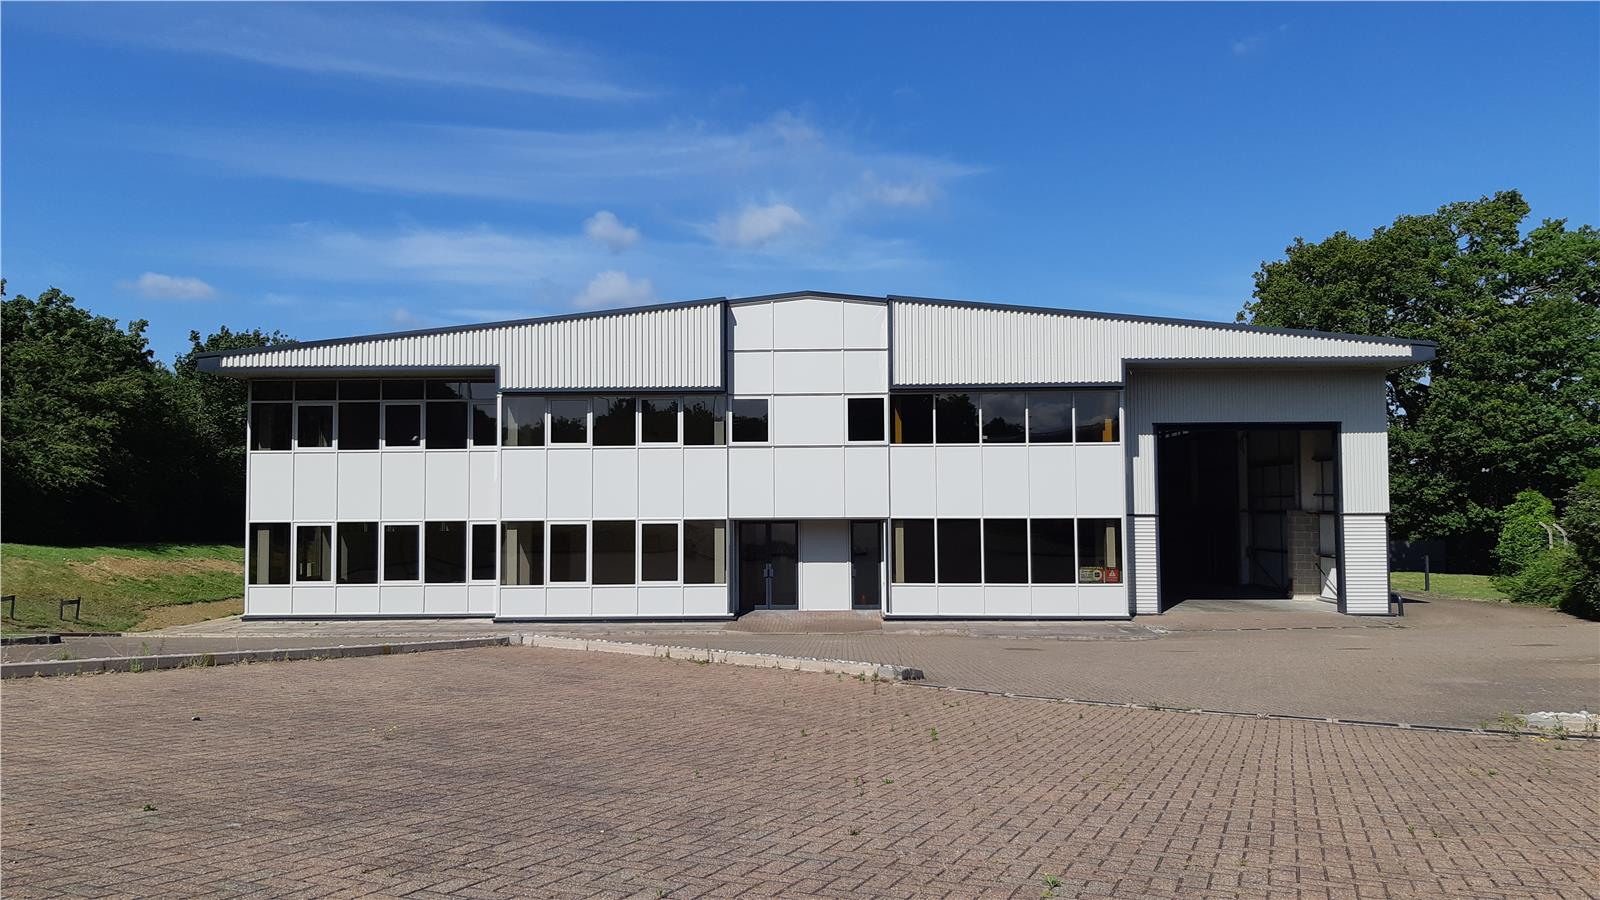 12-16 Tattersall Way, Widford Industrial Estate, Chelmsford